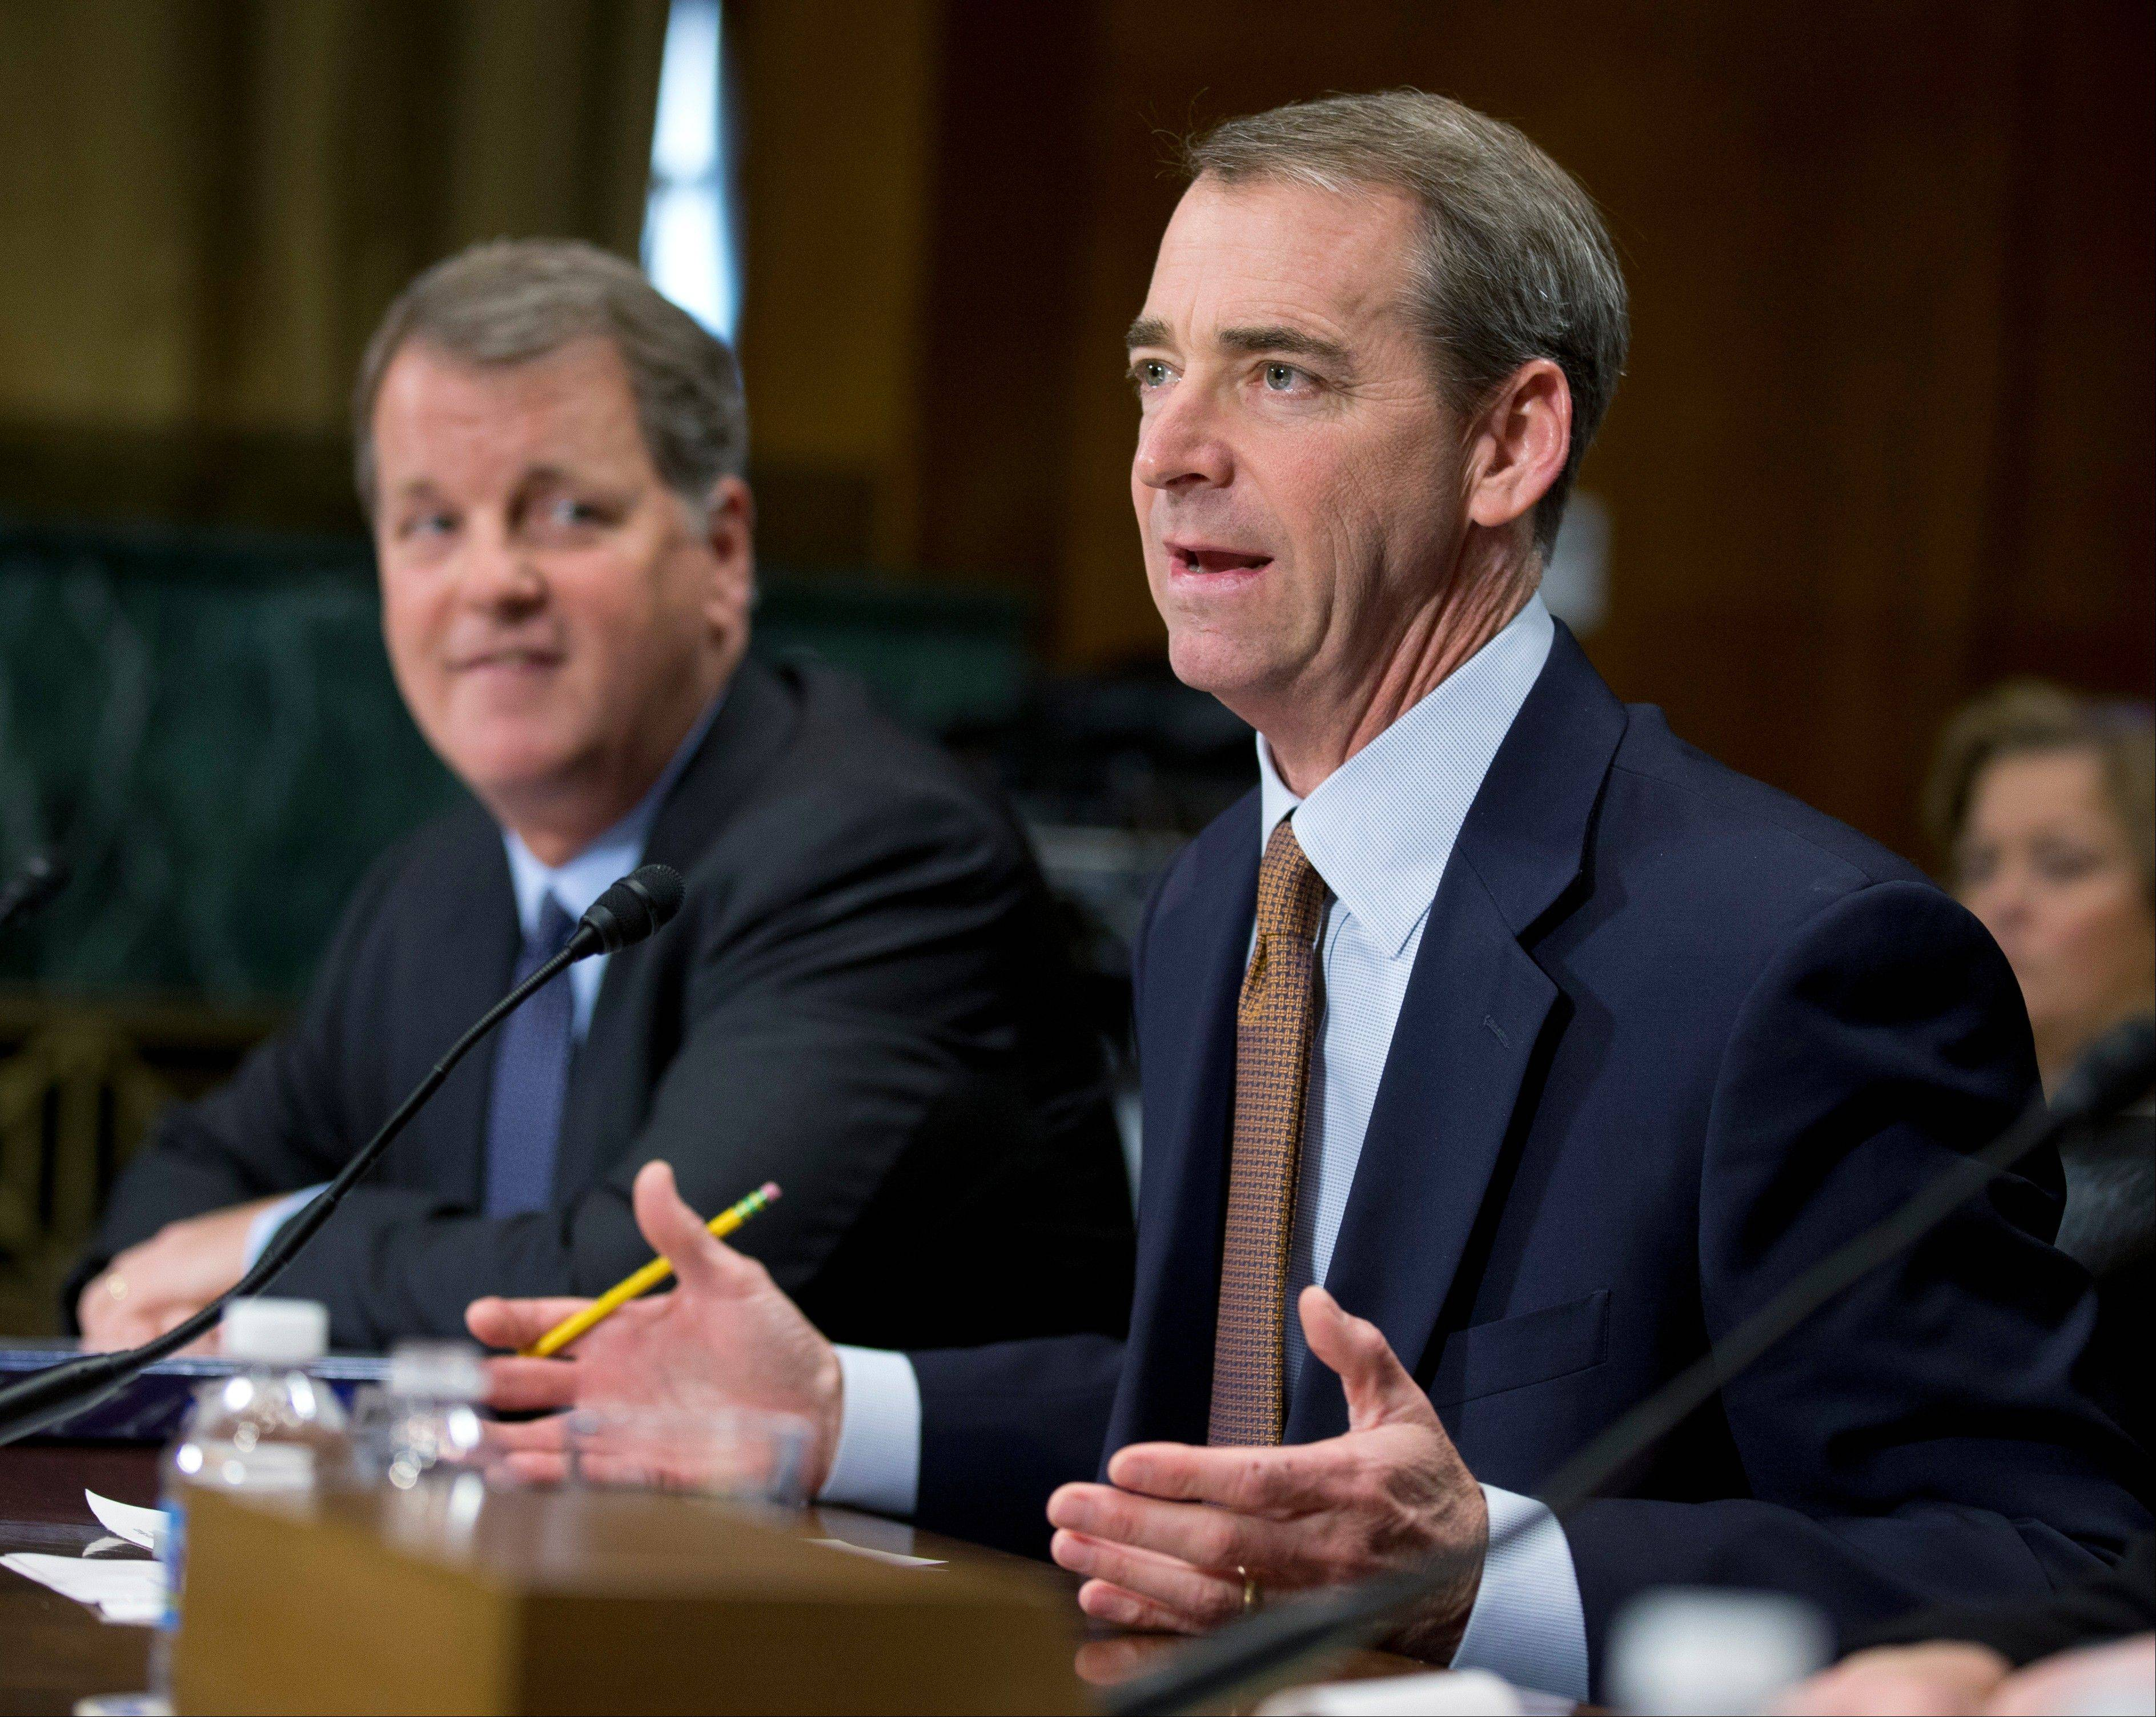 American Airlines and AMR Corporation, Chairman, President and CEO Thomas Horton, right, accompanied by US Airways Group Chairman and CEO Douglas Parker, testifies on Capitol Hill Tuesday before a Senate subcommittee.